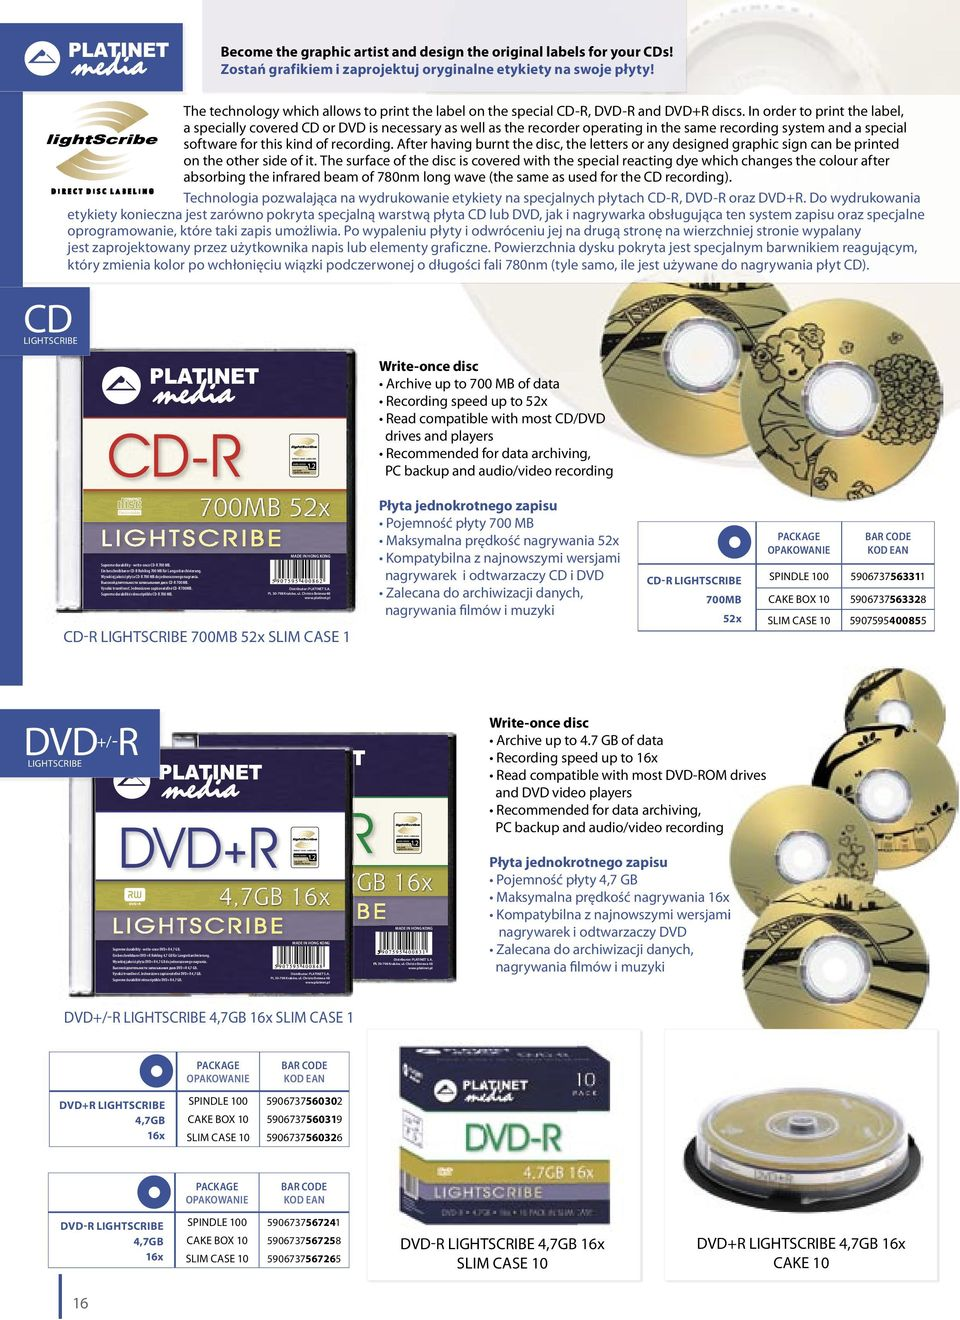 In order to print the label, a specially covered CD or DVD is necessary as well as the recorder operating in the same recording system and a special software for this kind of recording.